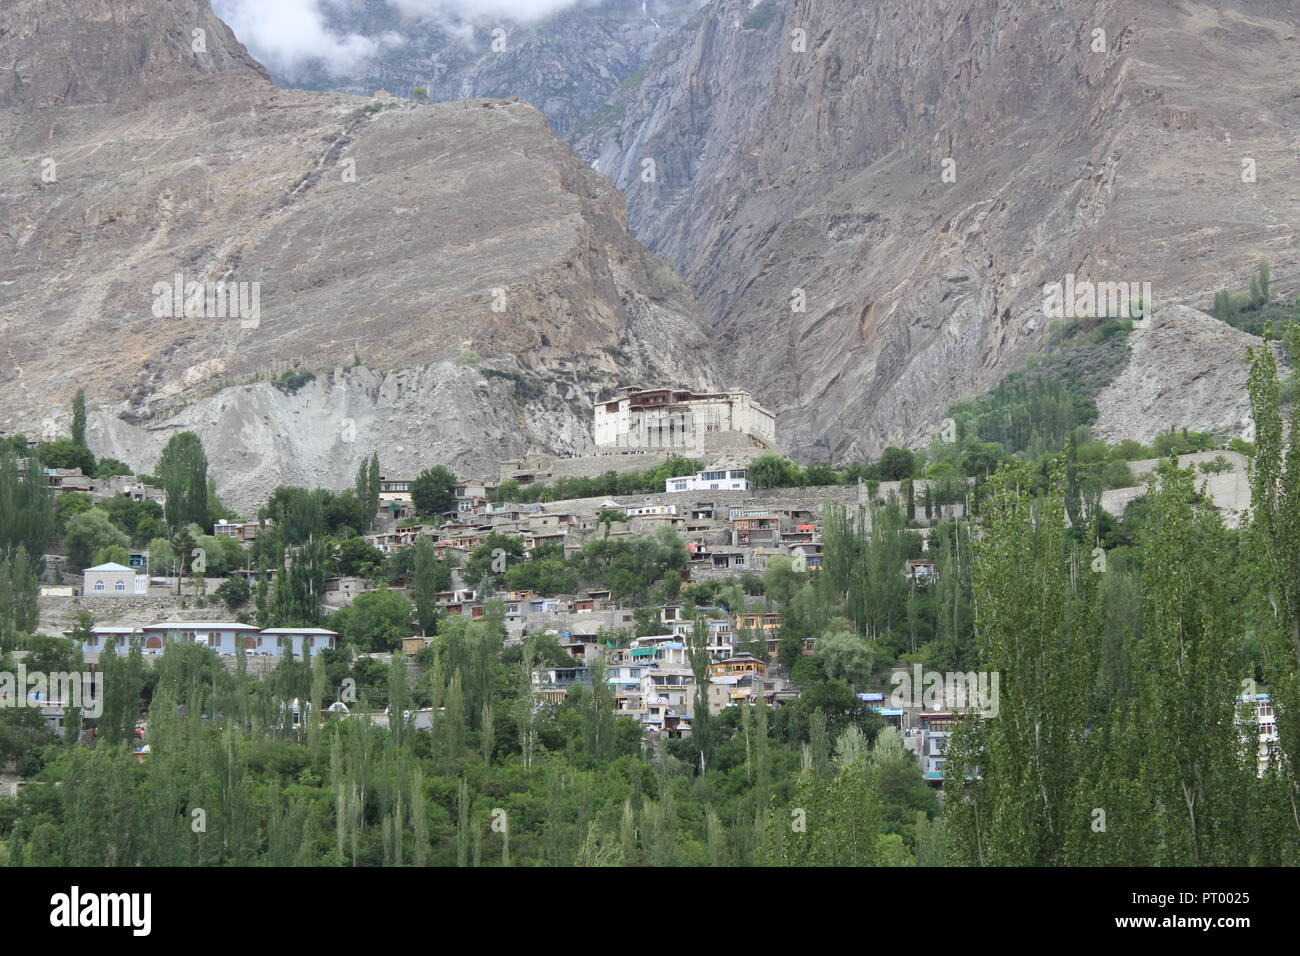 Baltit Fort is a fort in the Hunza valley, near the town of Karimabad, in the ... Once the former seat of the Hunza kingdom, Baltit 800 year old fort. - Stock Image